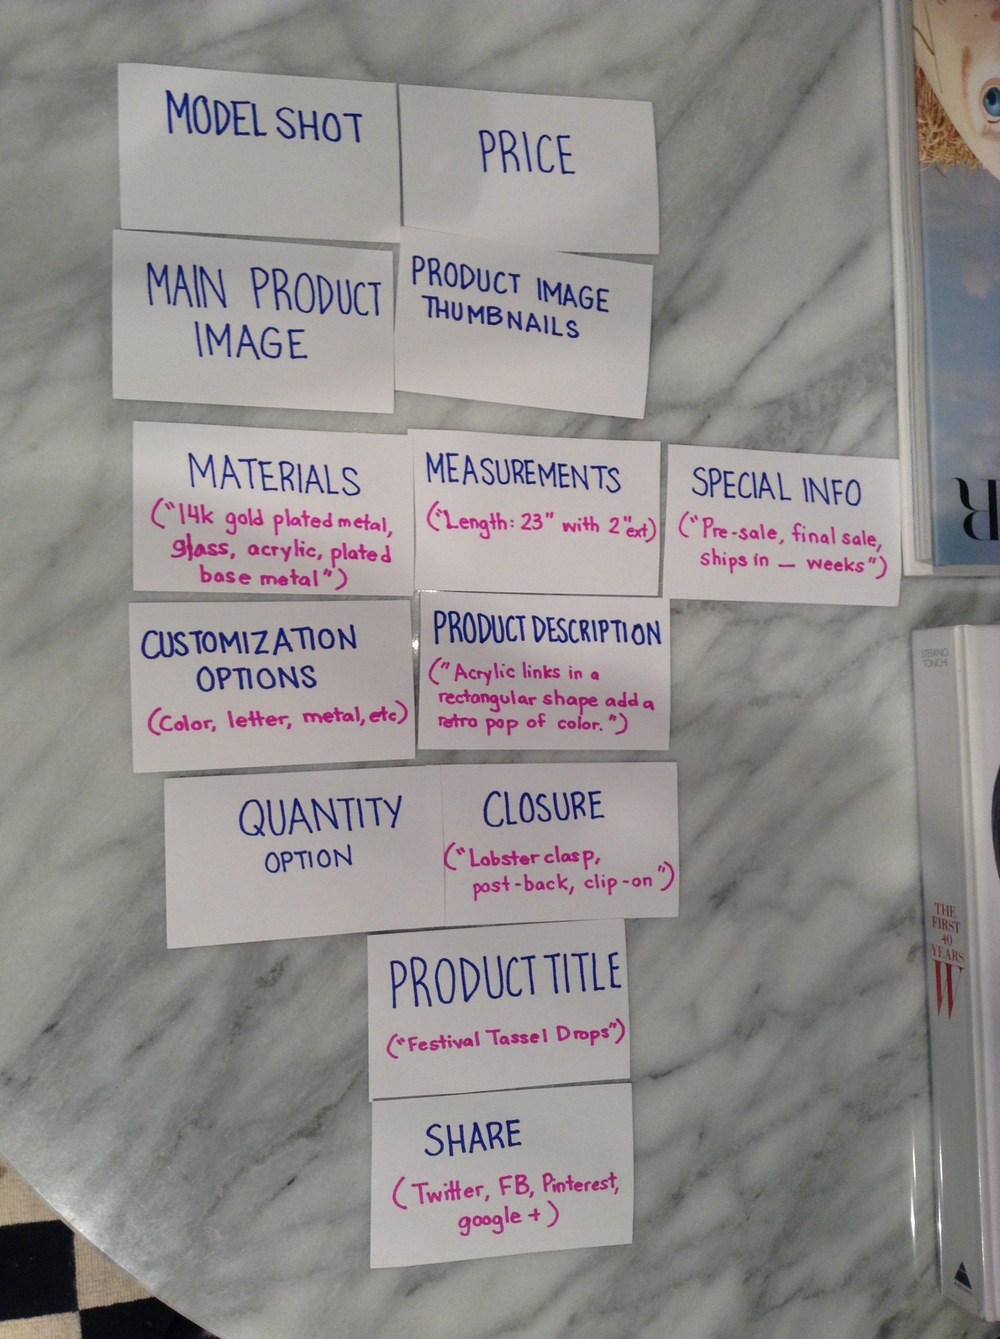 A card sorting exercise helped us prioritize information on a product display screen.